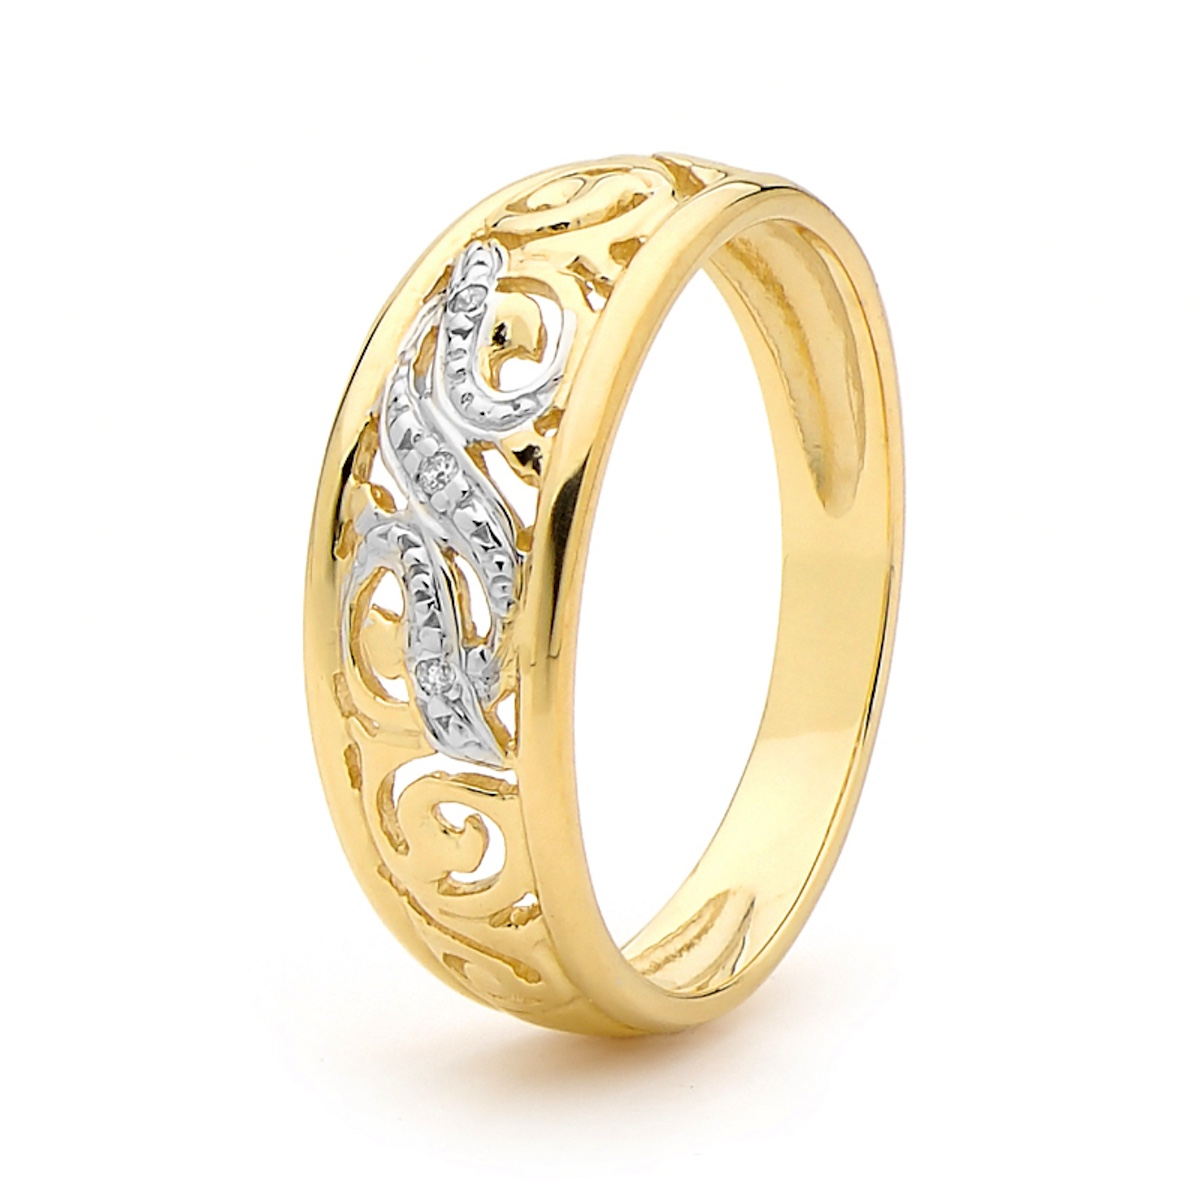 Love Diamond Ring with Celtic Carving